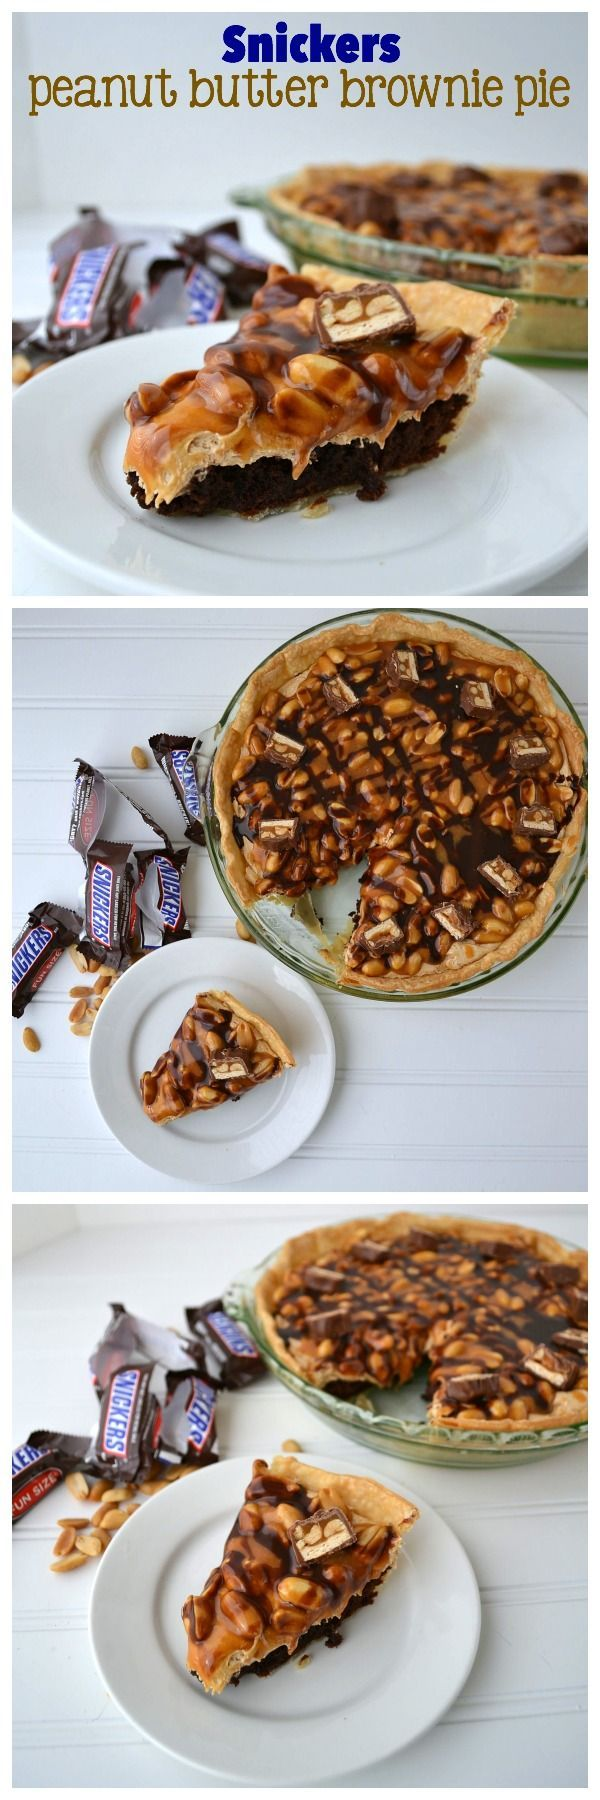 Snickers Peanut Butter Pie - a brownie in a pie crust topped with peanut butter nougat, caramel, and peanuts, just like a snickers candy bar!